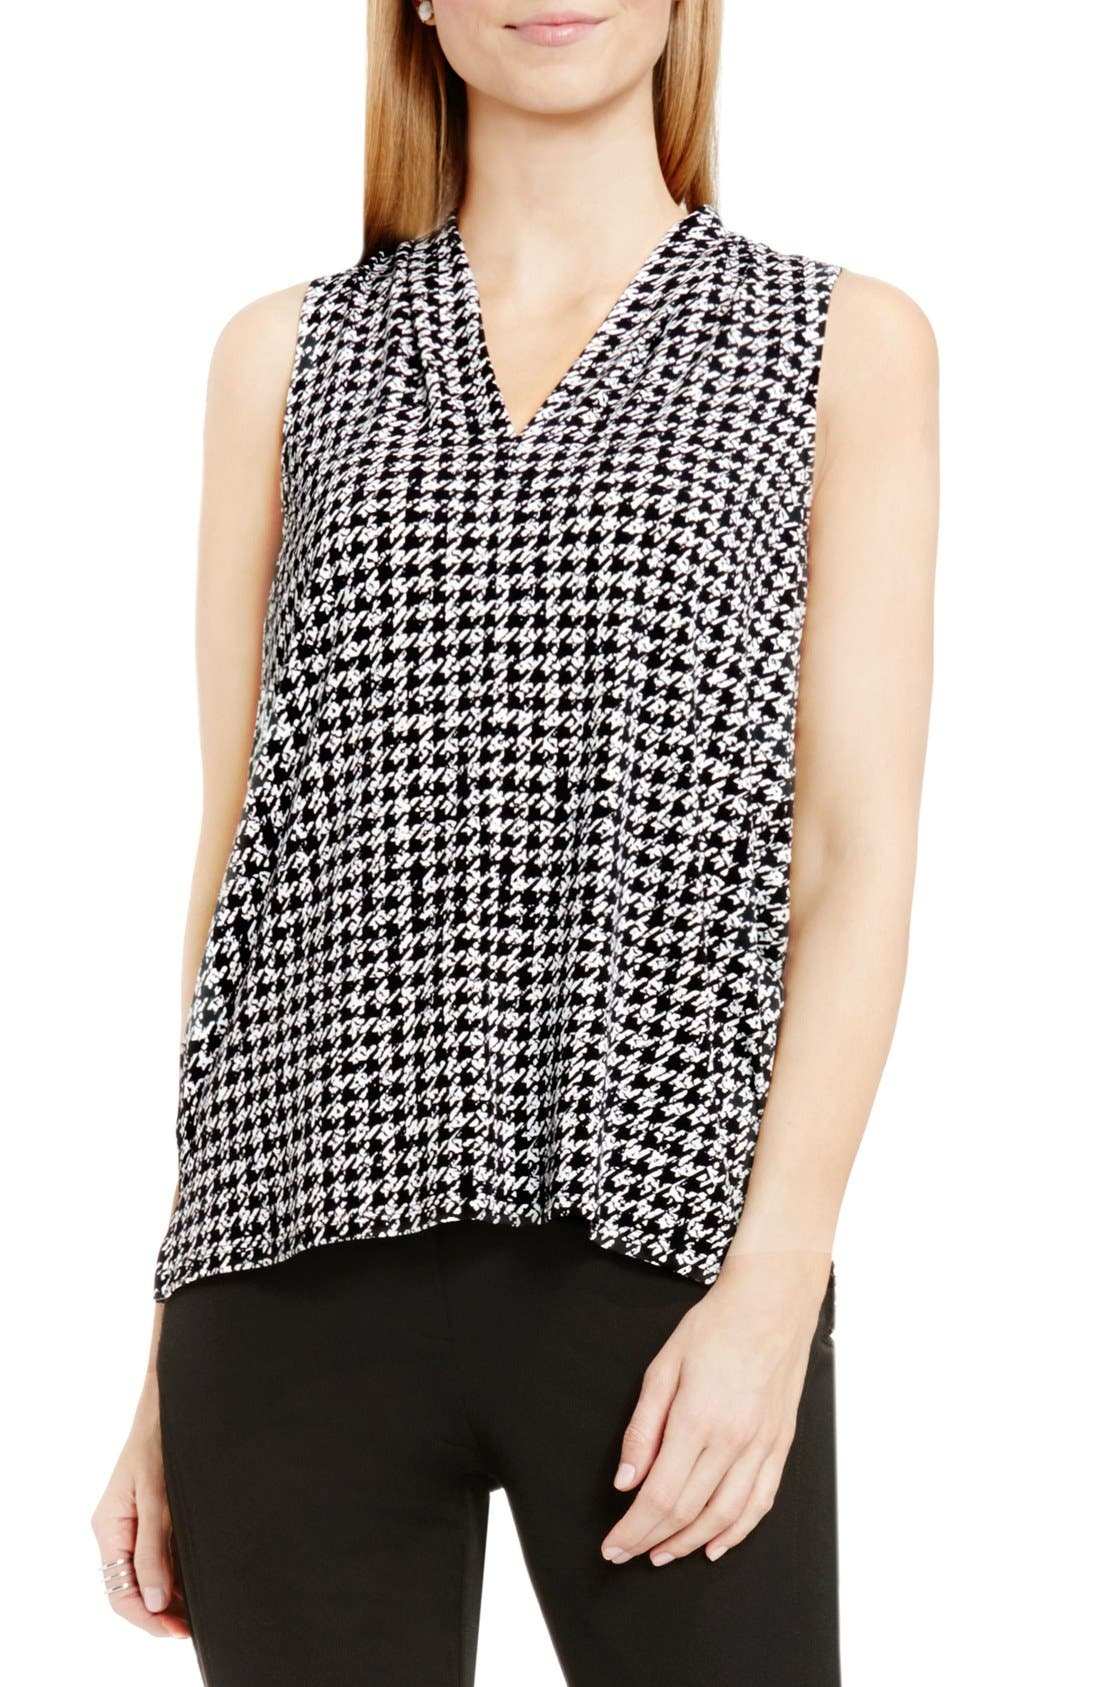 Main Image - Vince Camuto Sleeveless V-Neck Top (Regular & Petite)